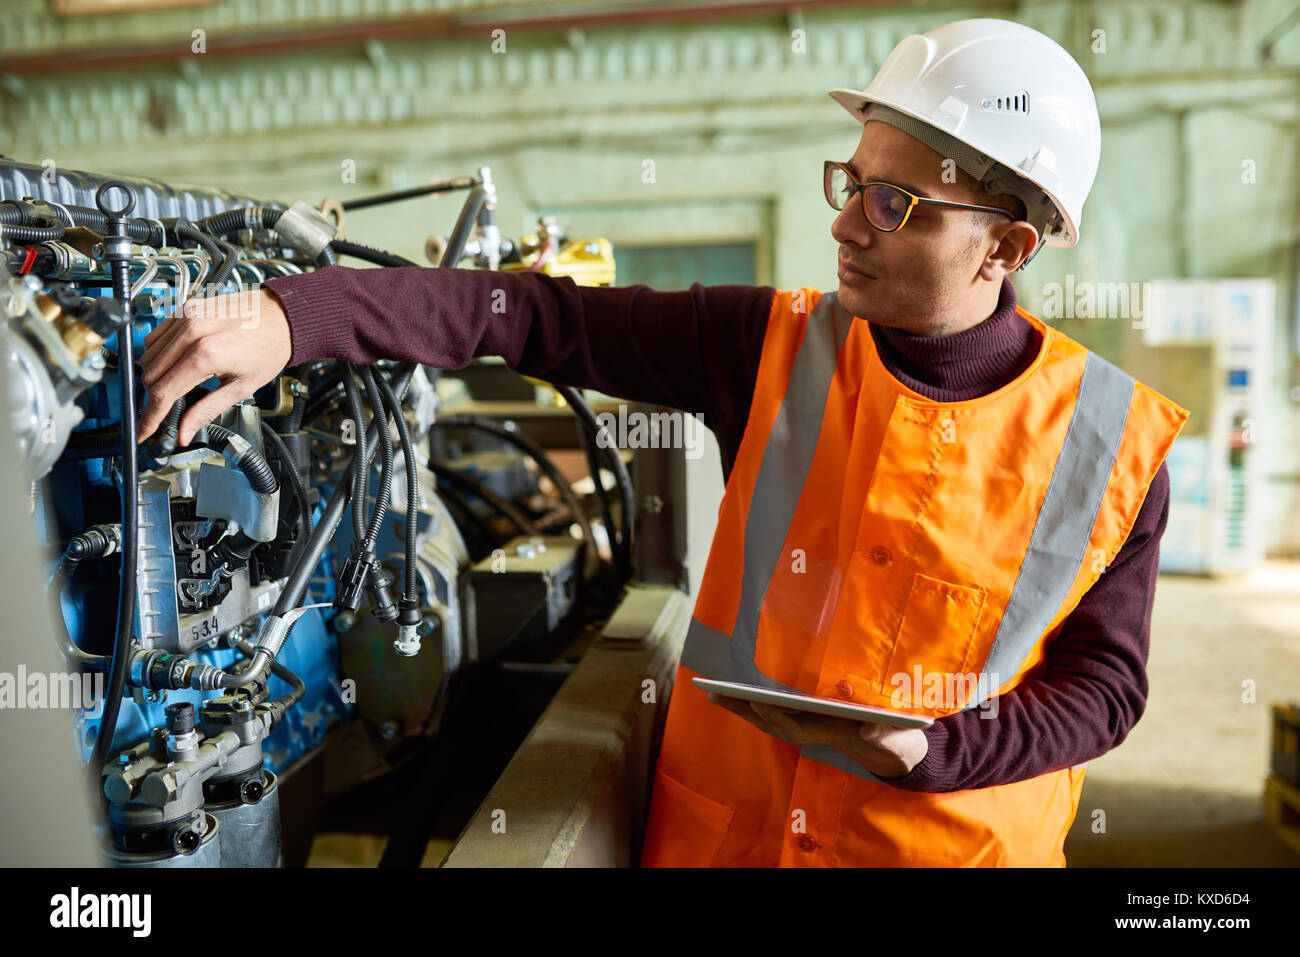 Handsome Technician Adjusting Engine Features - Stock Image